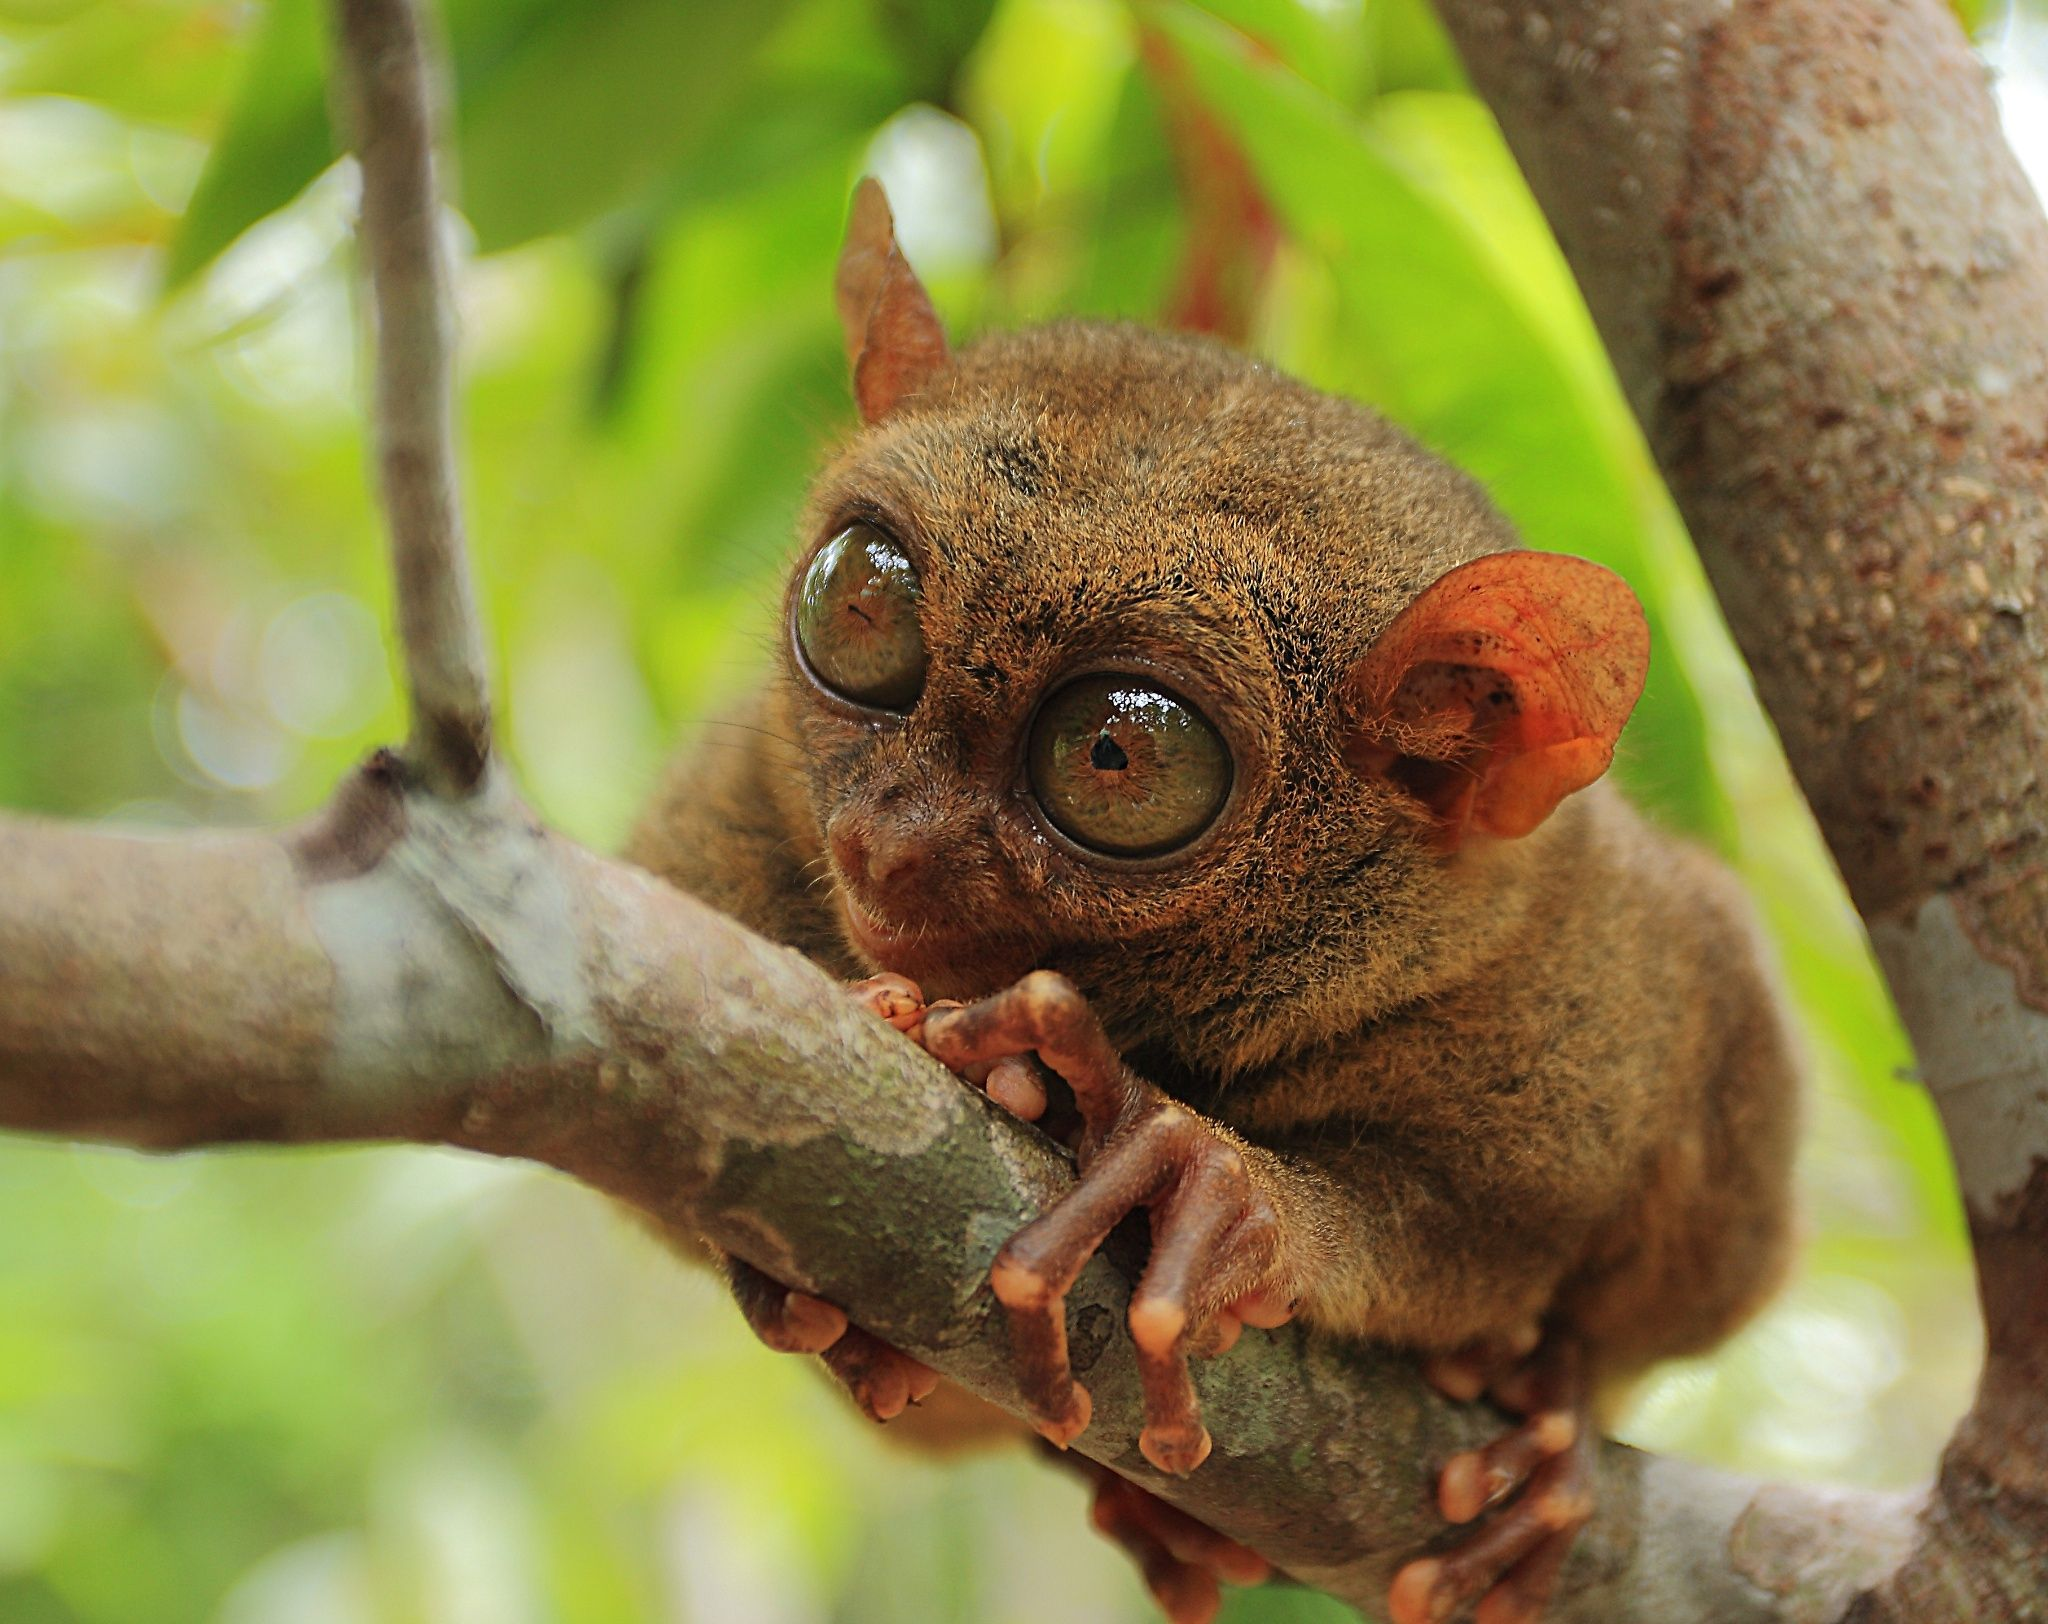 Peek-a-boo - The Philippine Tarsier is one of the smallest primates.